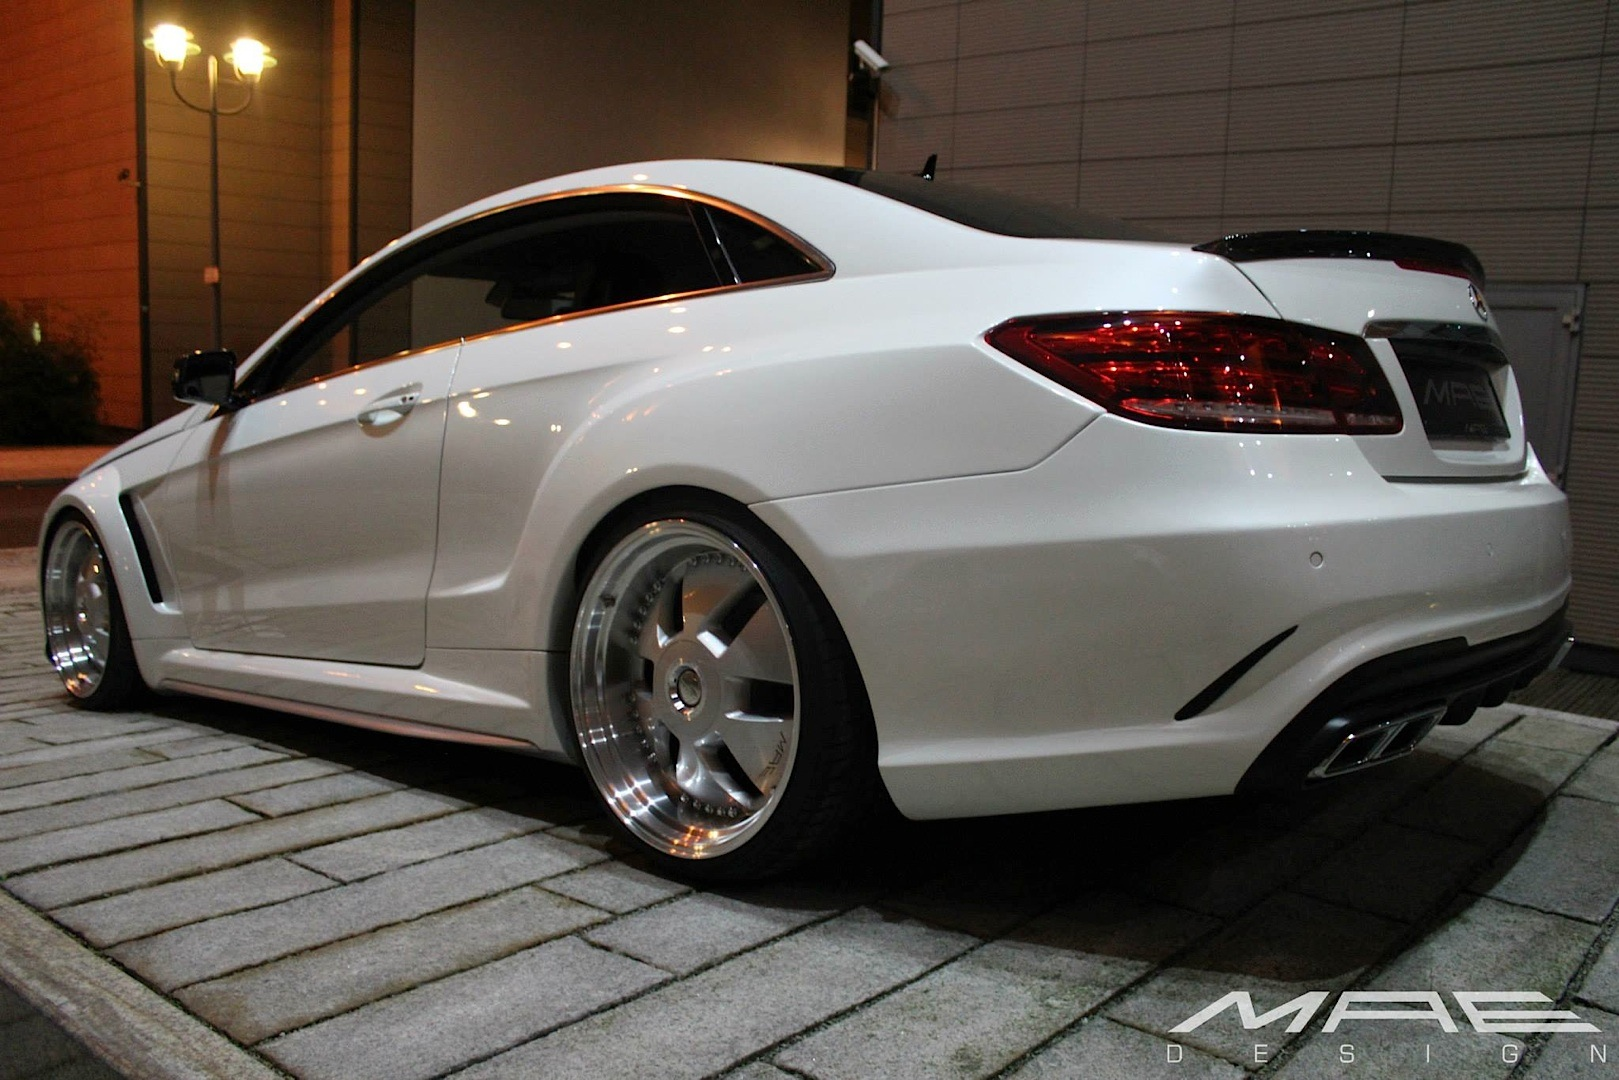 E Class Coupe Wide Bodykit By Mae Is As Clean As A Whistle